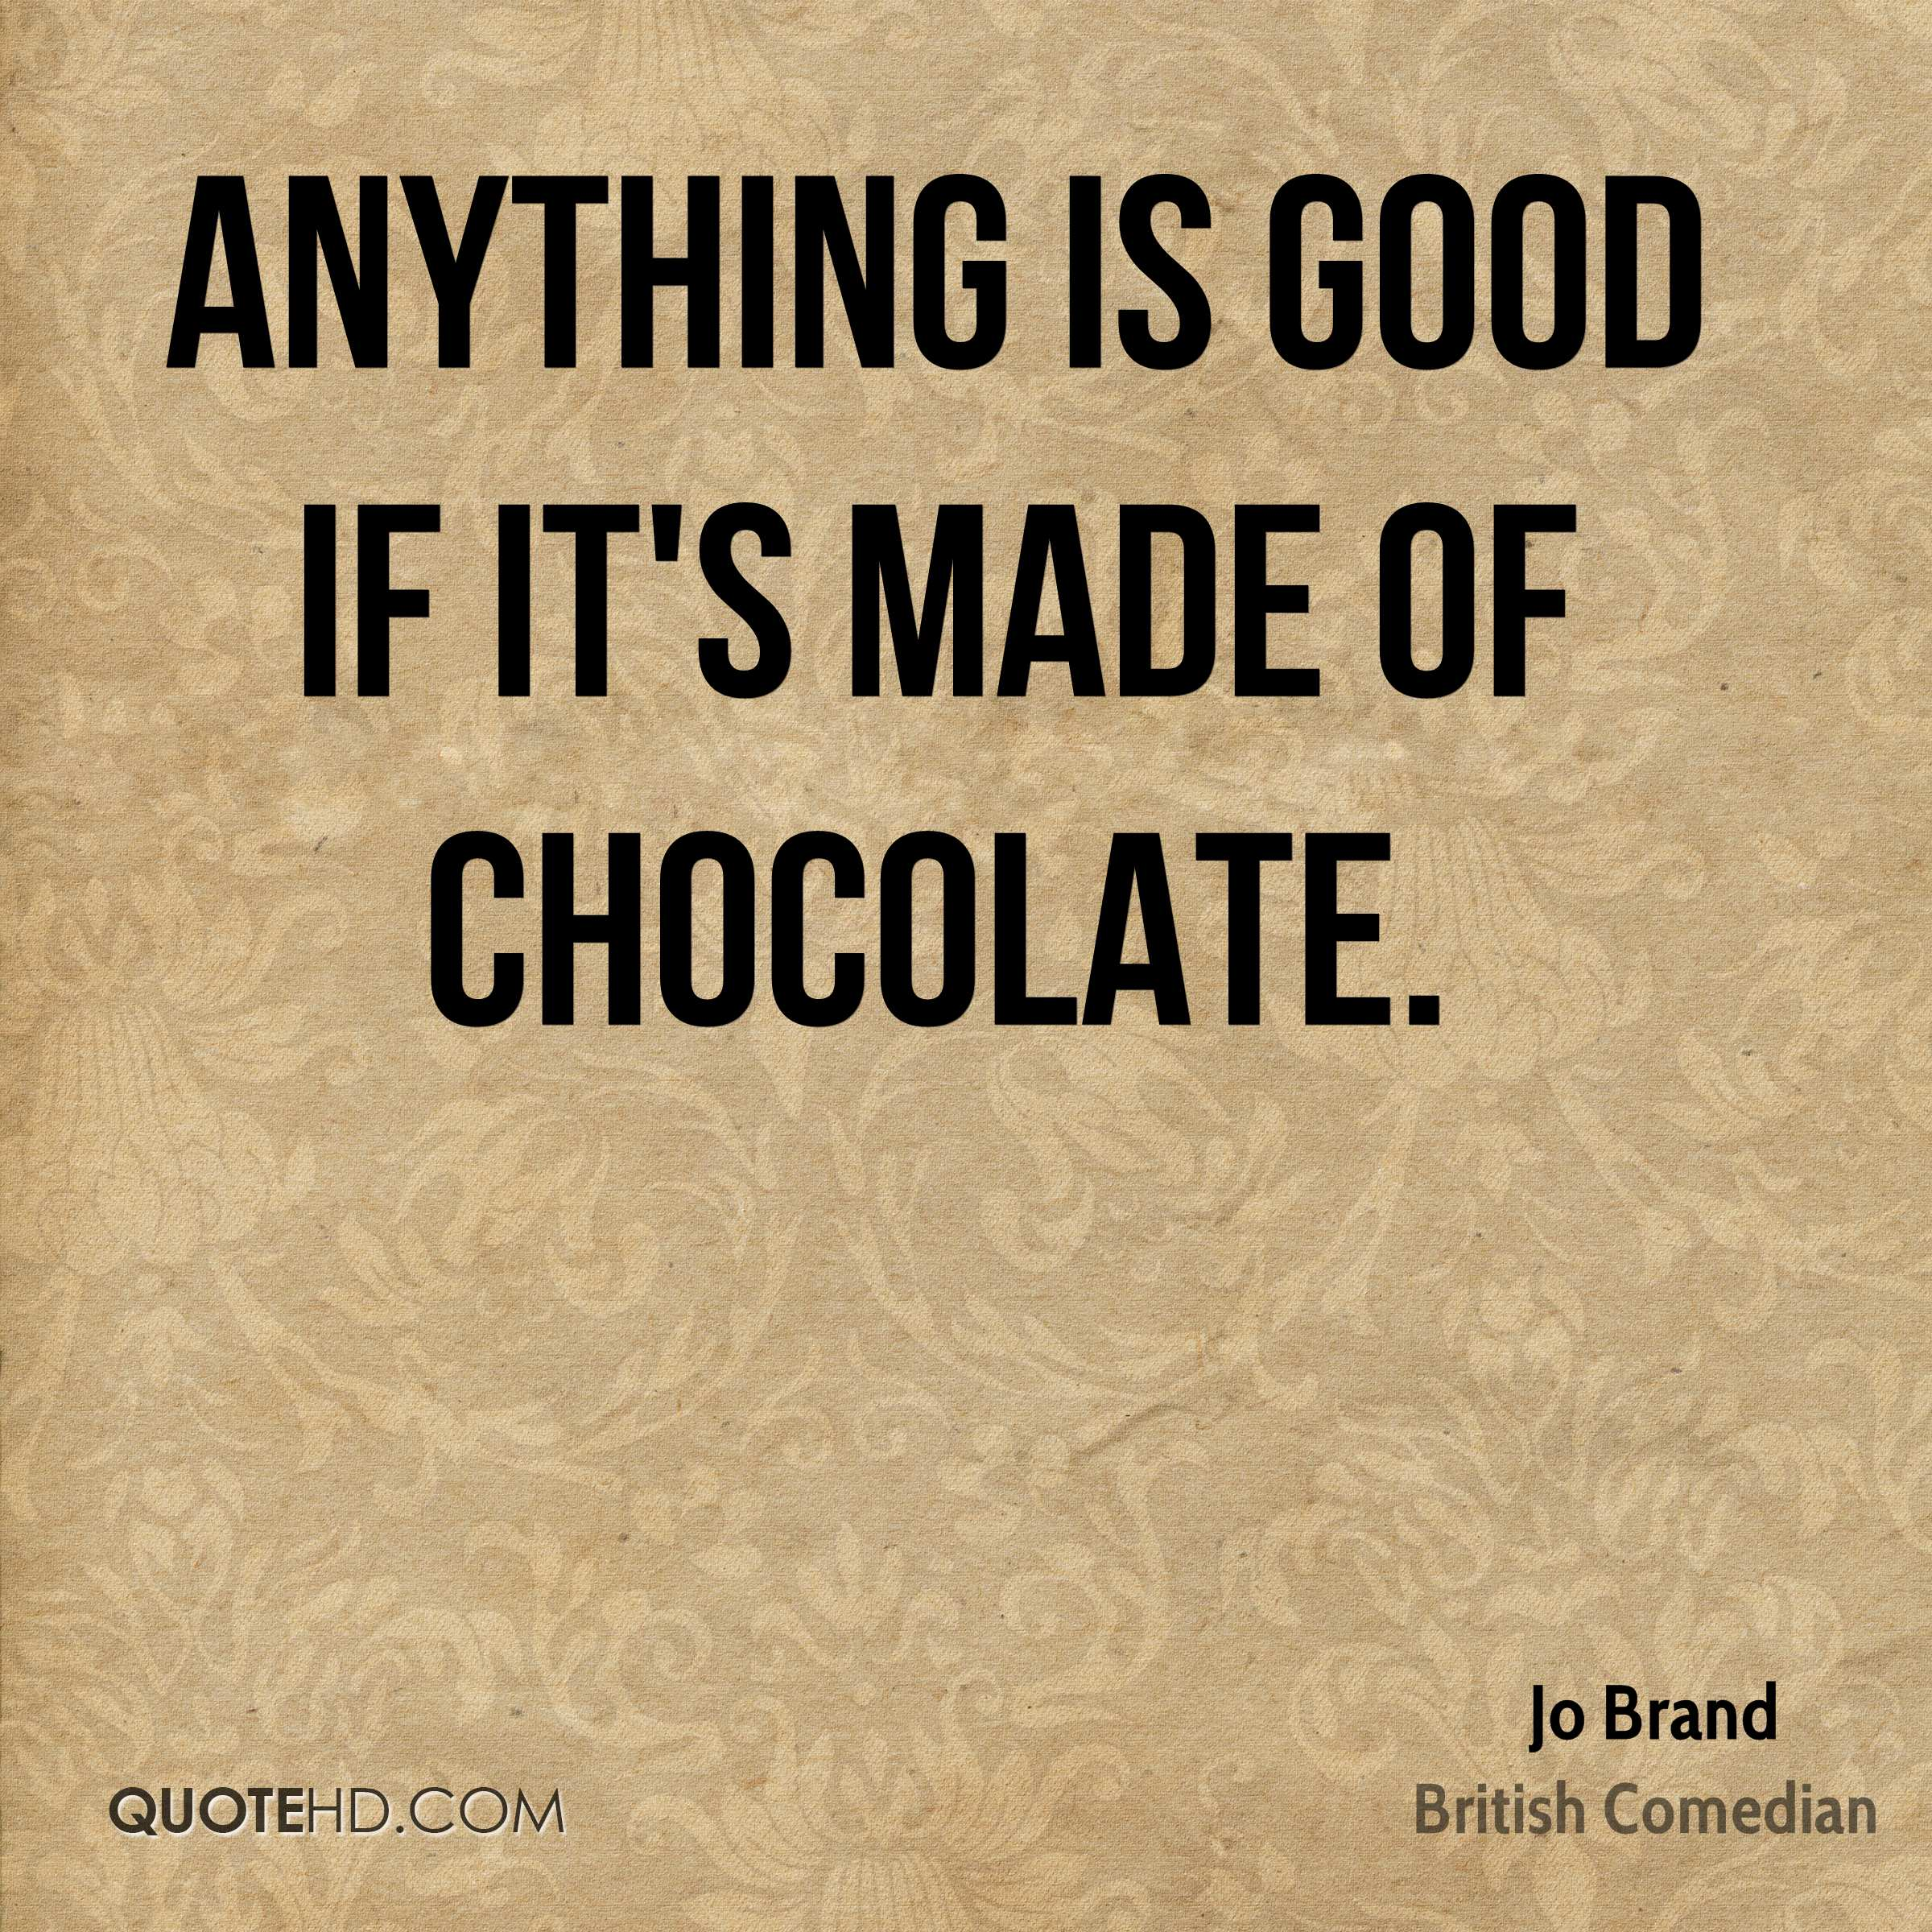 Jo Brand Food Quotes | QuoteHD